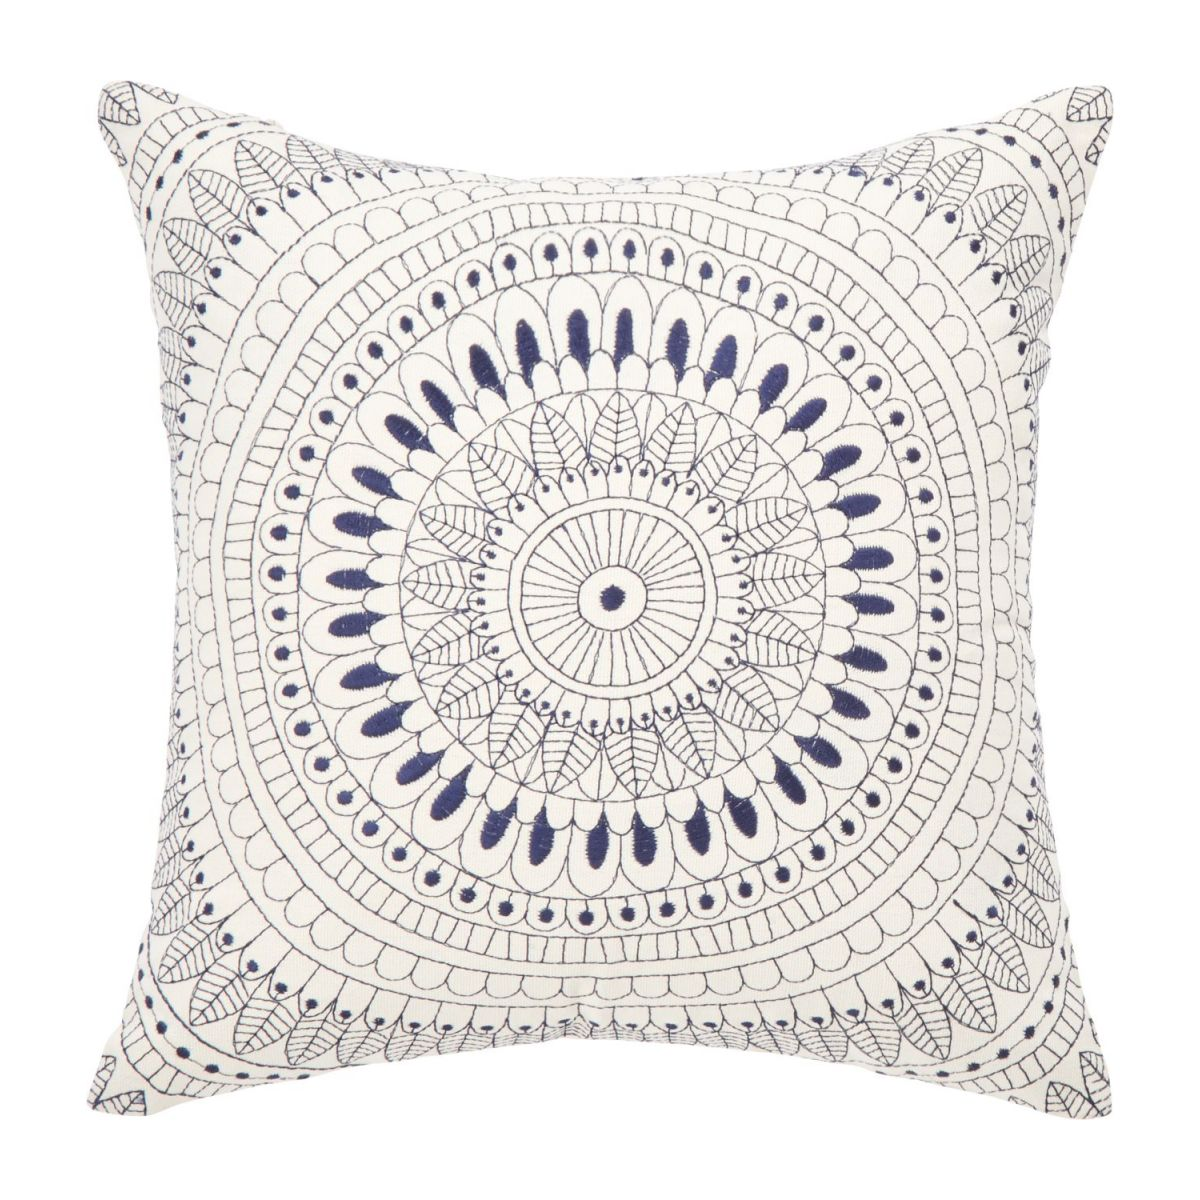 Coussin 30x30 broderie bleue n°1